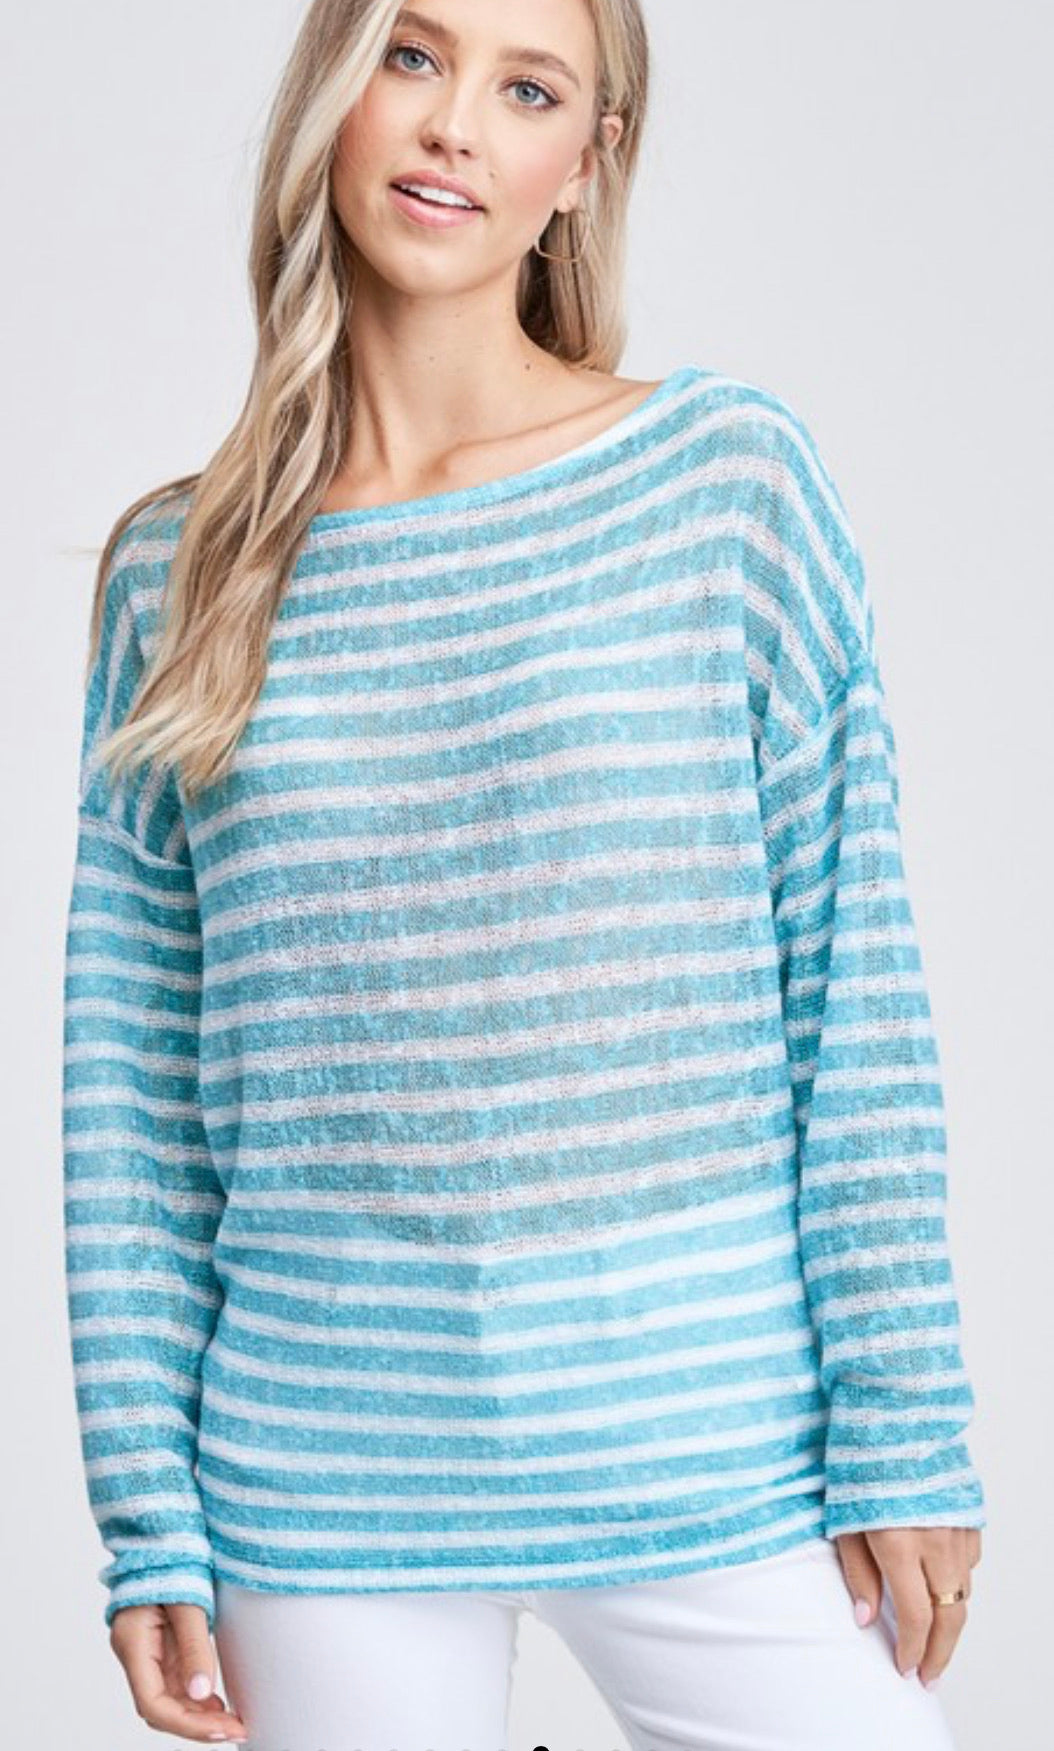 Seaside Stripes Sweater